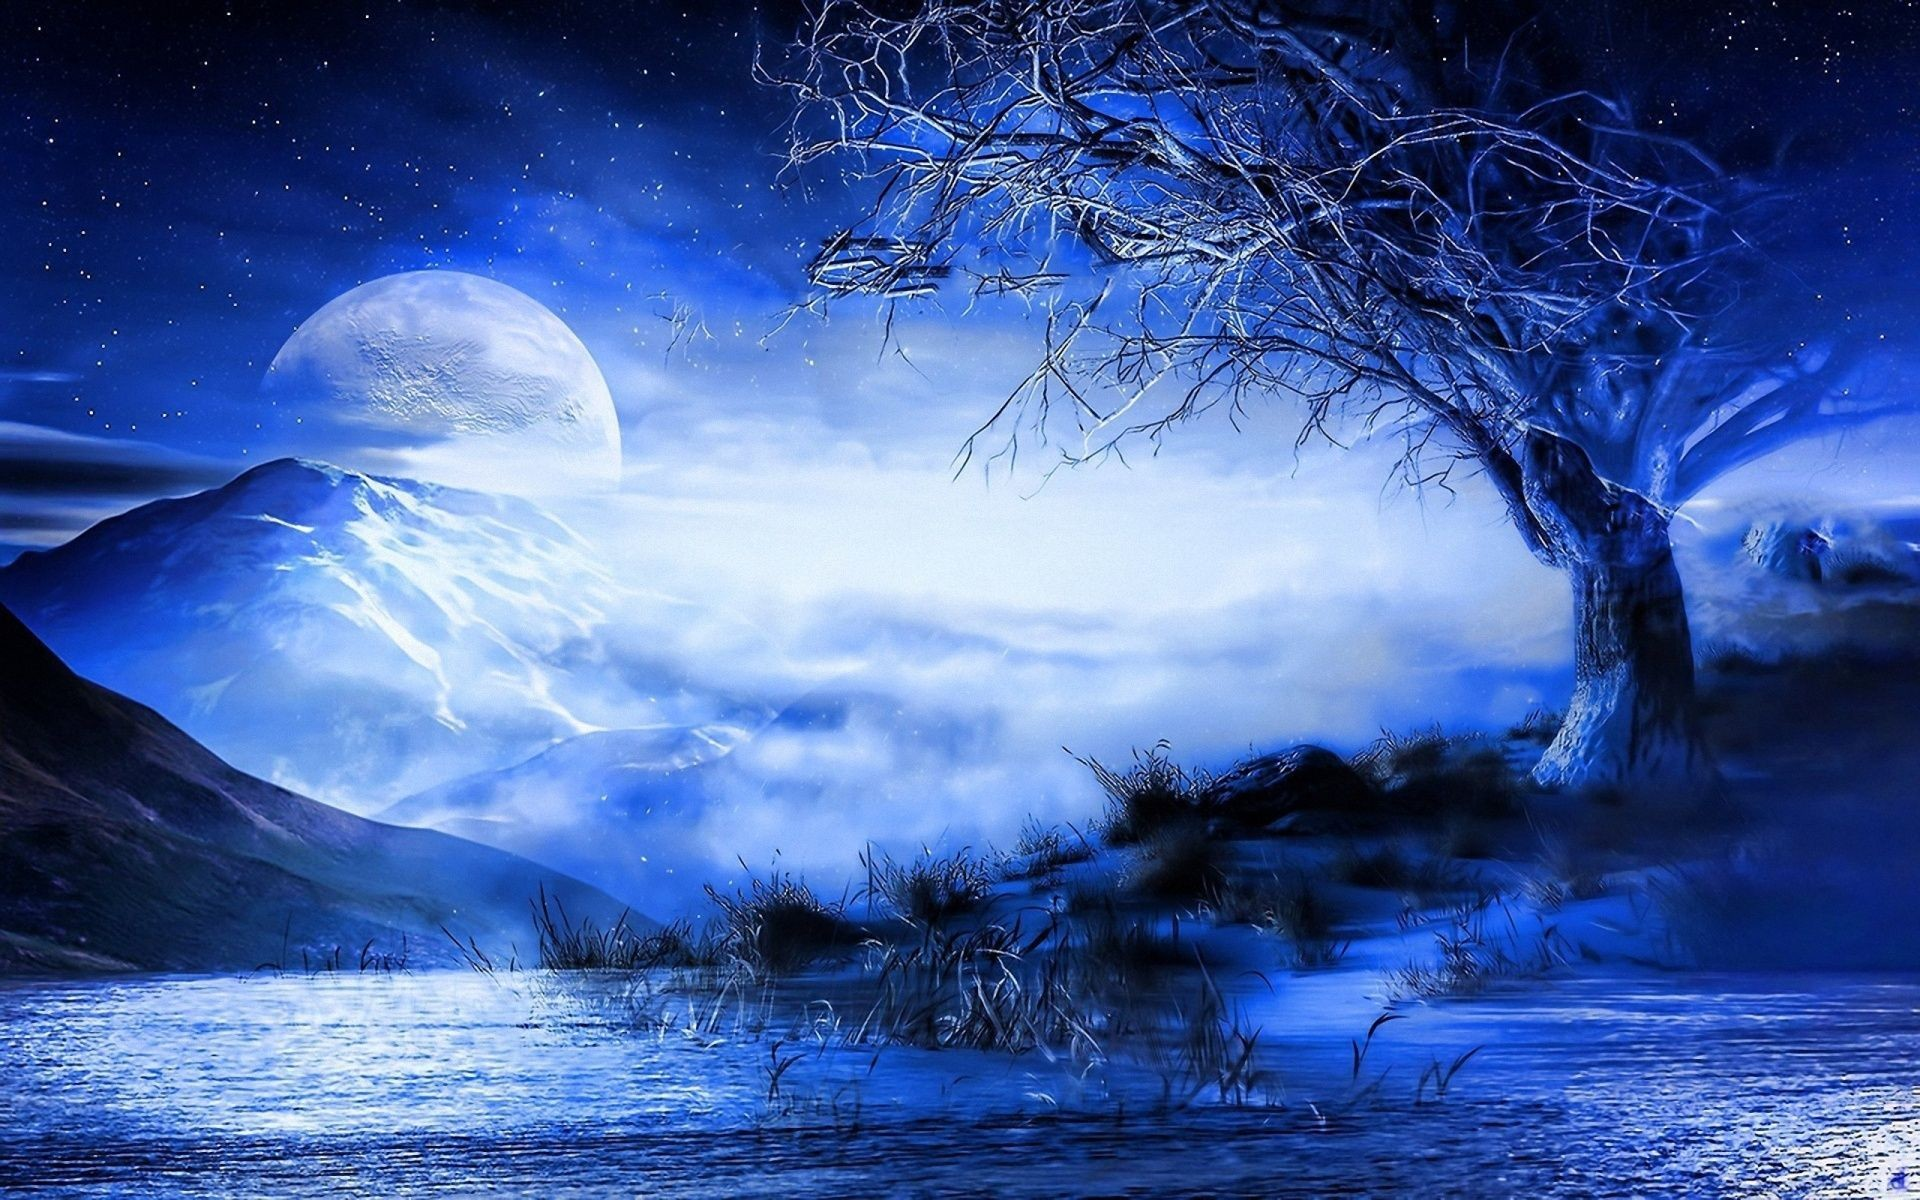 Res: 1920x1200, Blue-Moon-3D-Wallpapers-HD.jpg